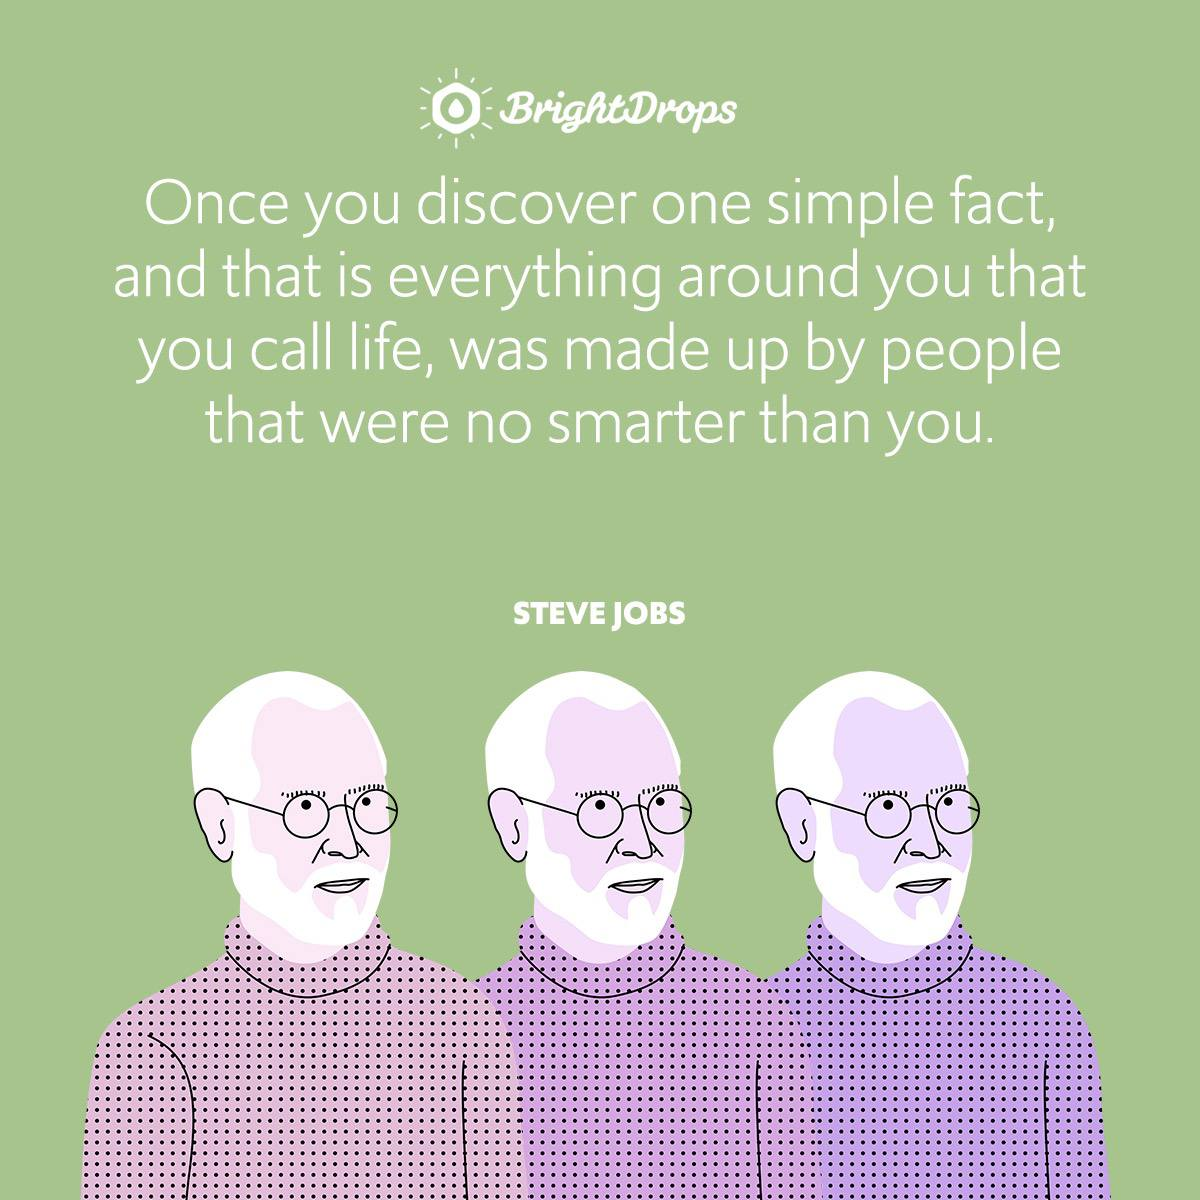 Once you discover one simple fact, and that is everything around you that you call life, was made up by people that were no smarter than you.